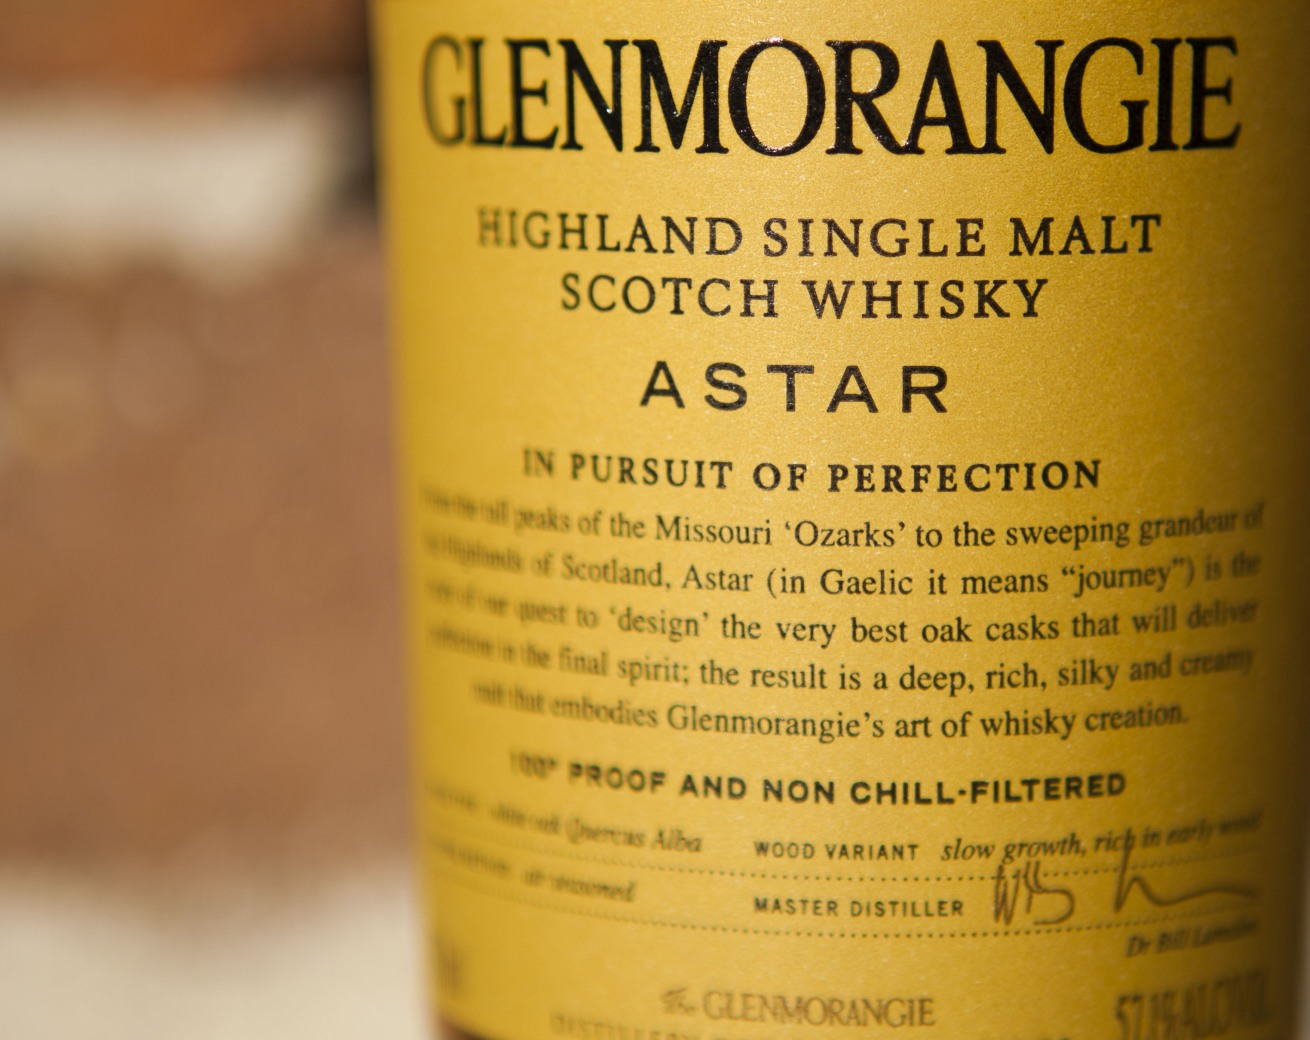 Glenmorangie Astar Whisky Review